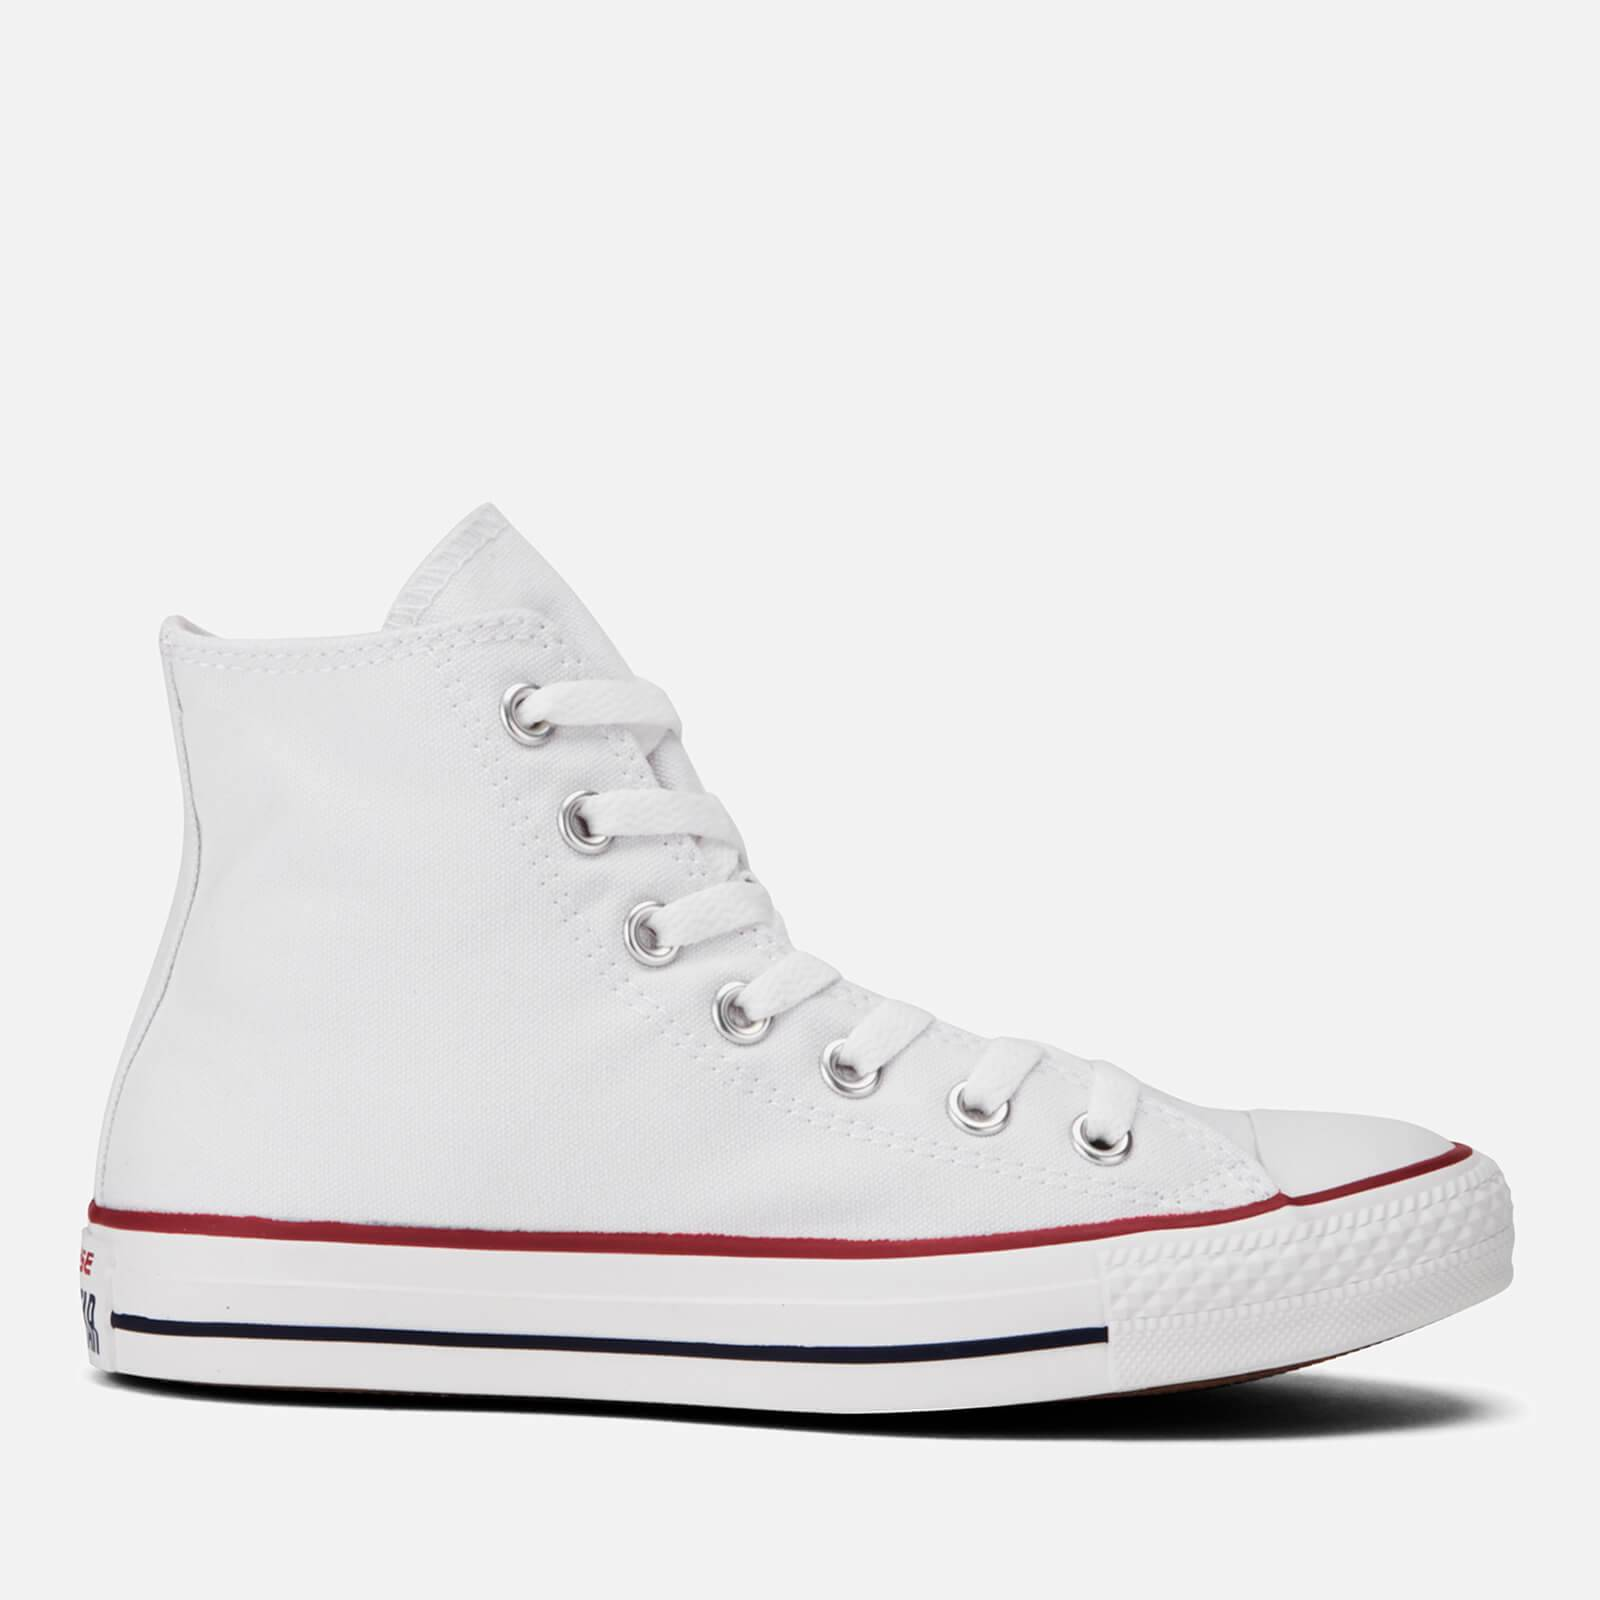 Converse Chuck Taylor All Star Hi-Top Trainers - Optical White - UK 5